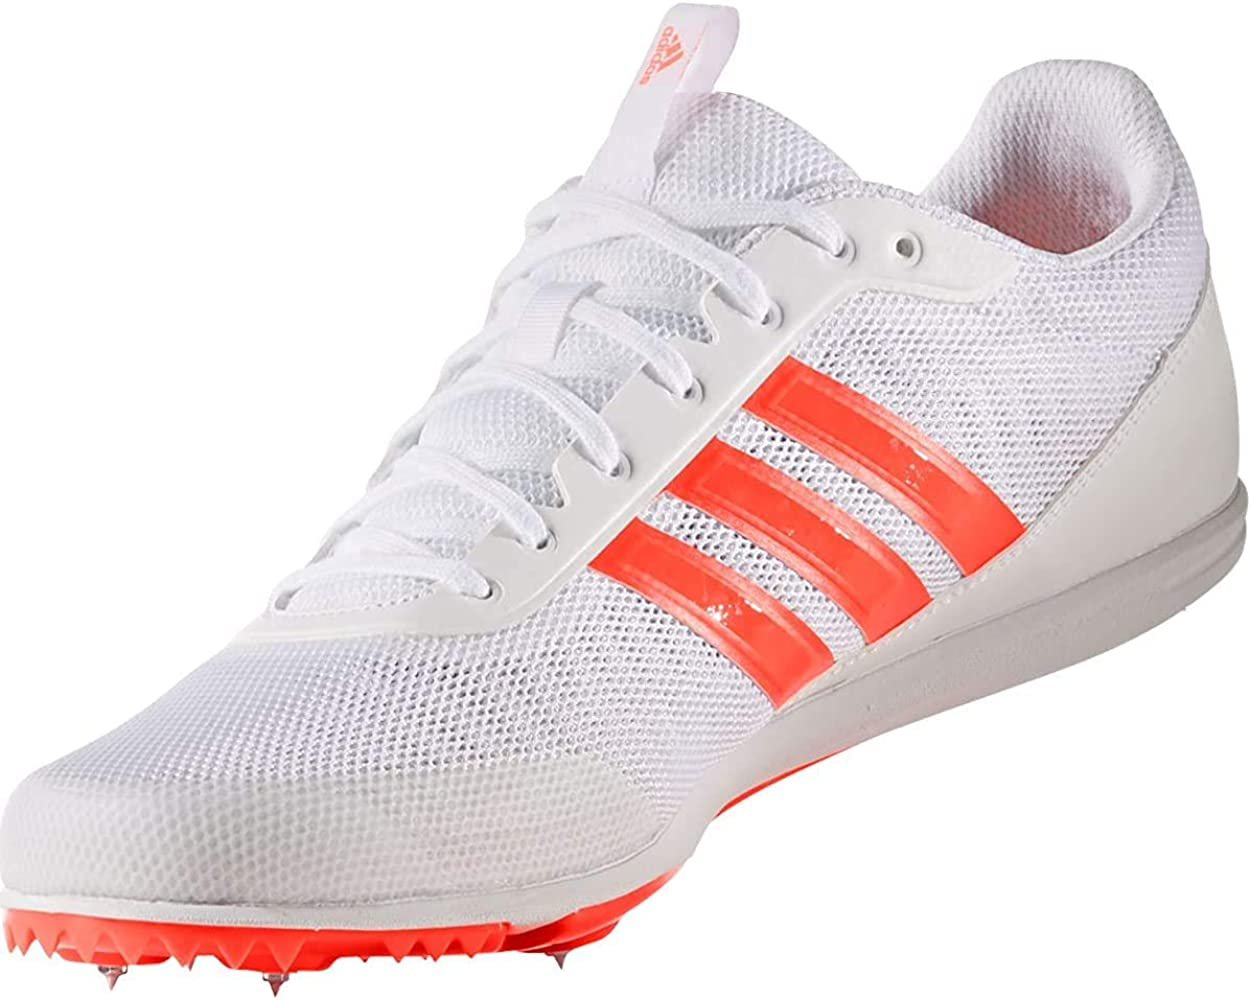 Zapatillas deportivas adidas Distancestar, color Blanco Solar Rojo ...